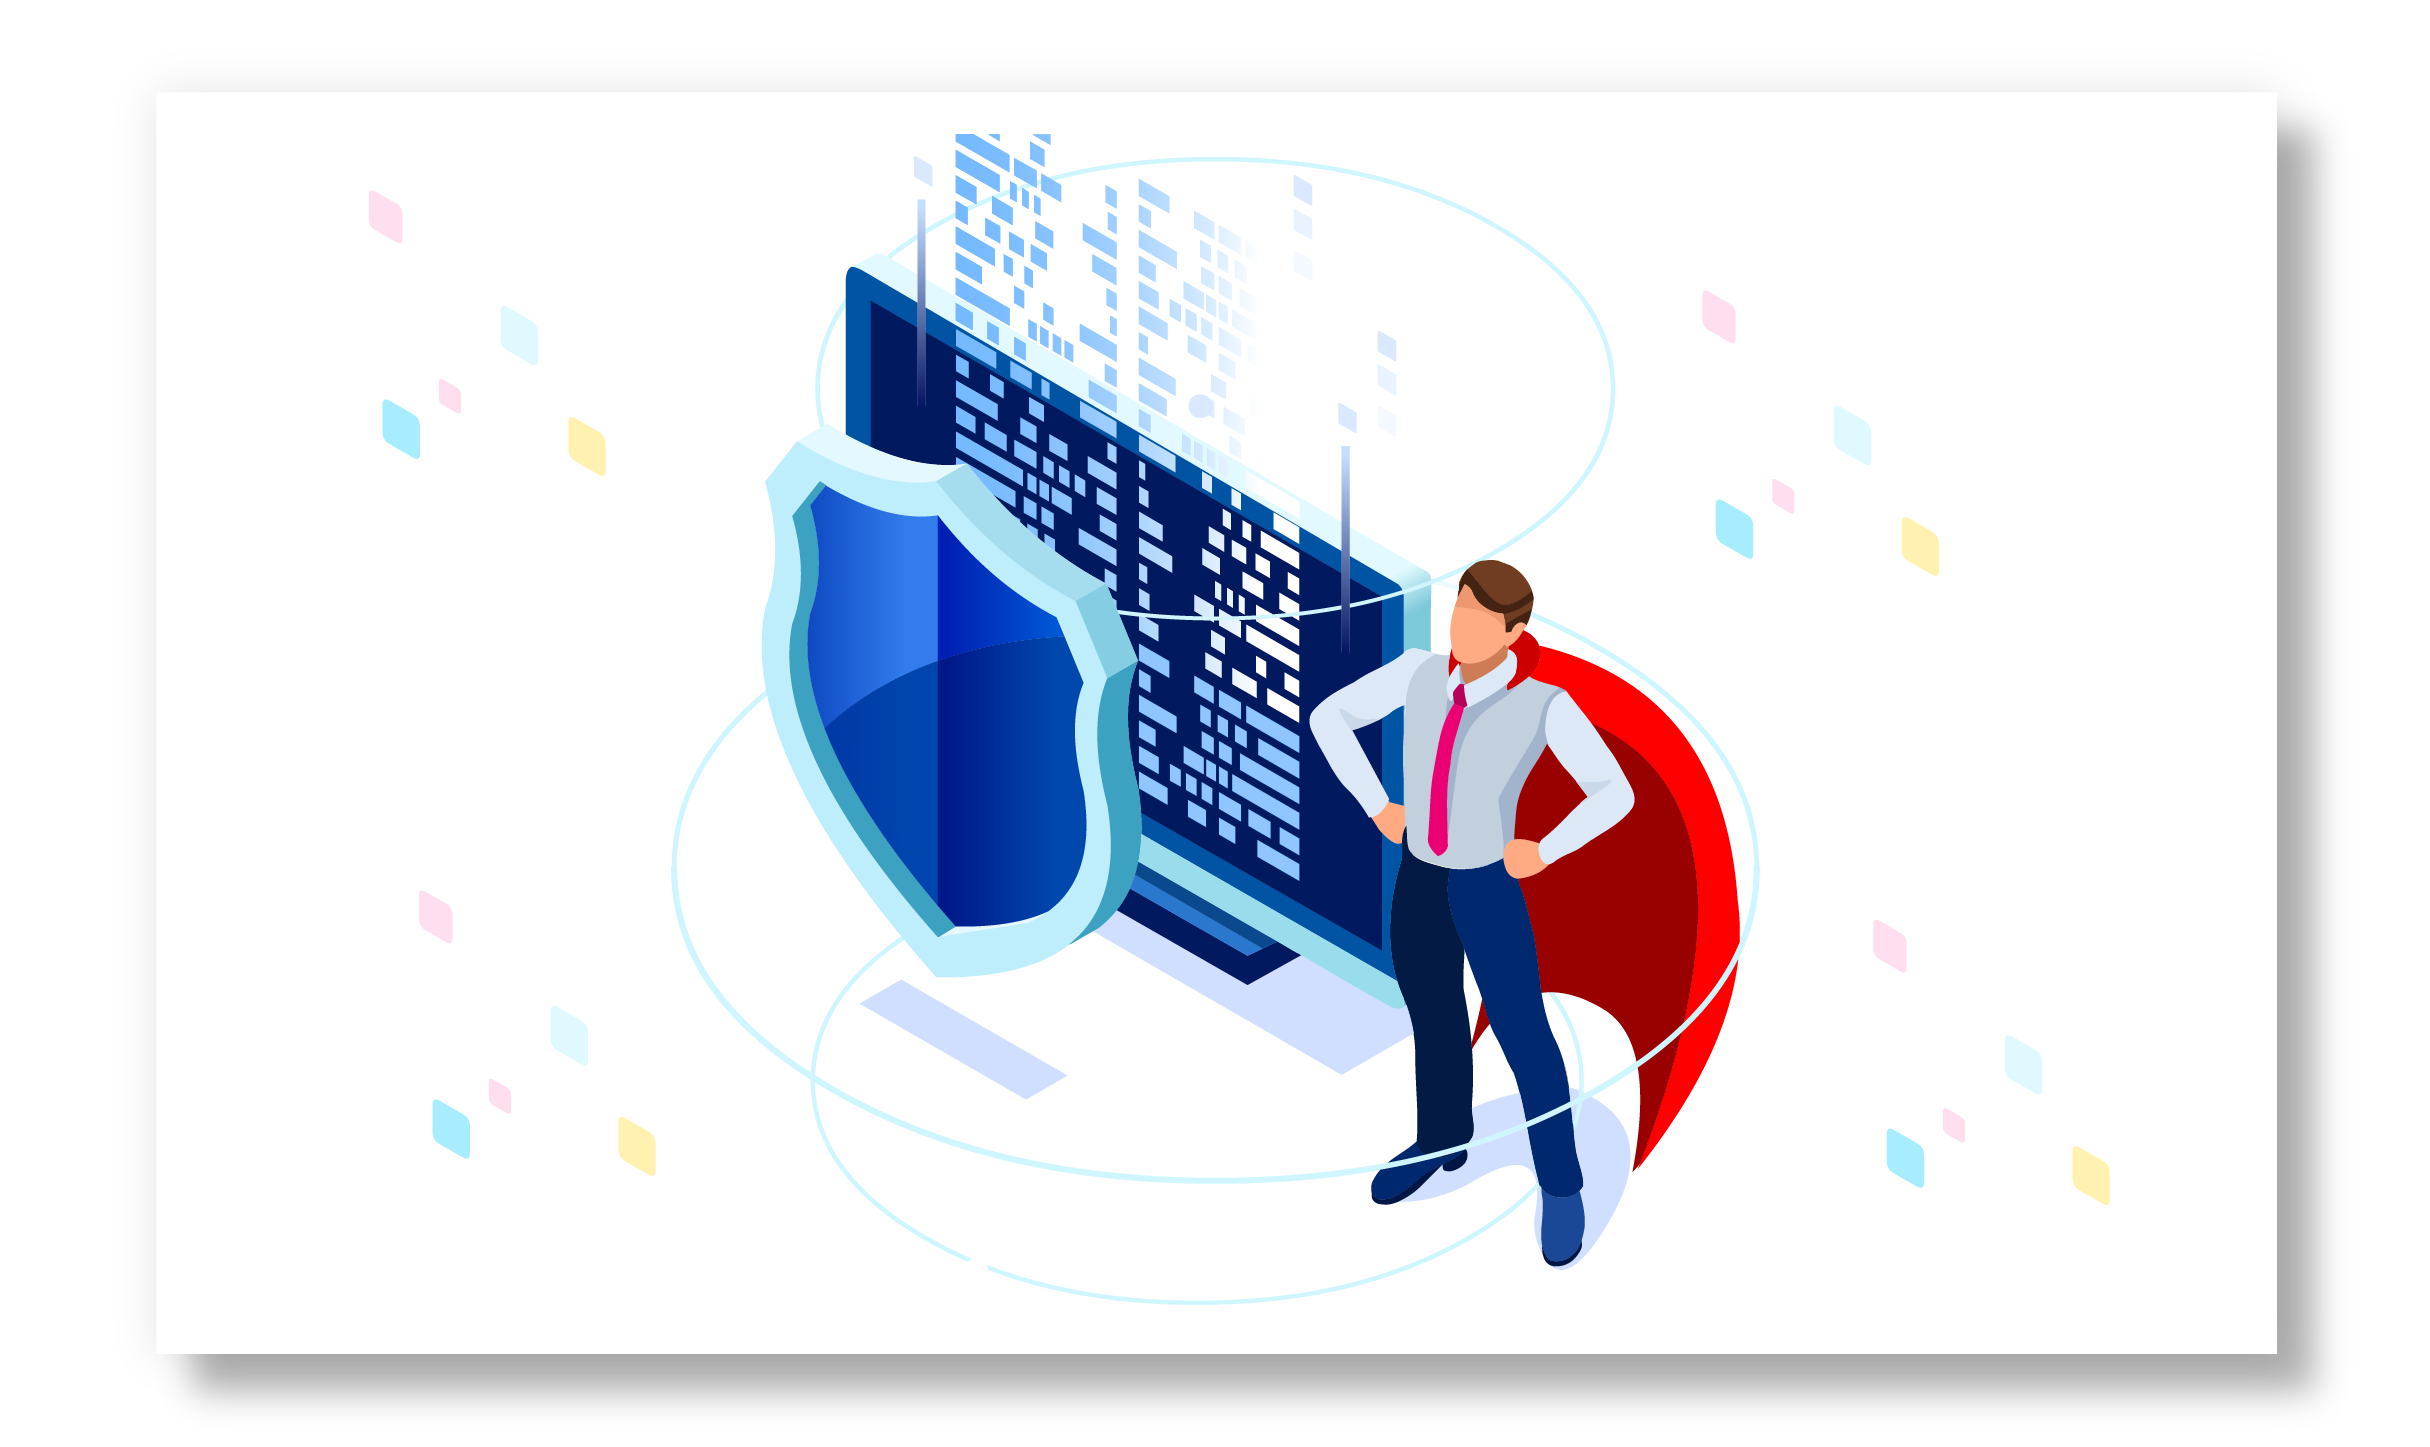 With the authority to easily grant and revoke user access, - your business can protect its network from potential disaster and breach. Your systems are safe in AERIFY.io hands.